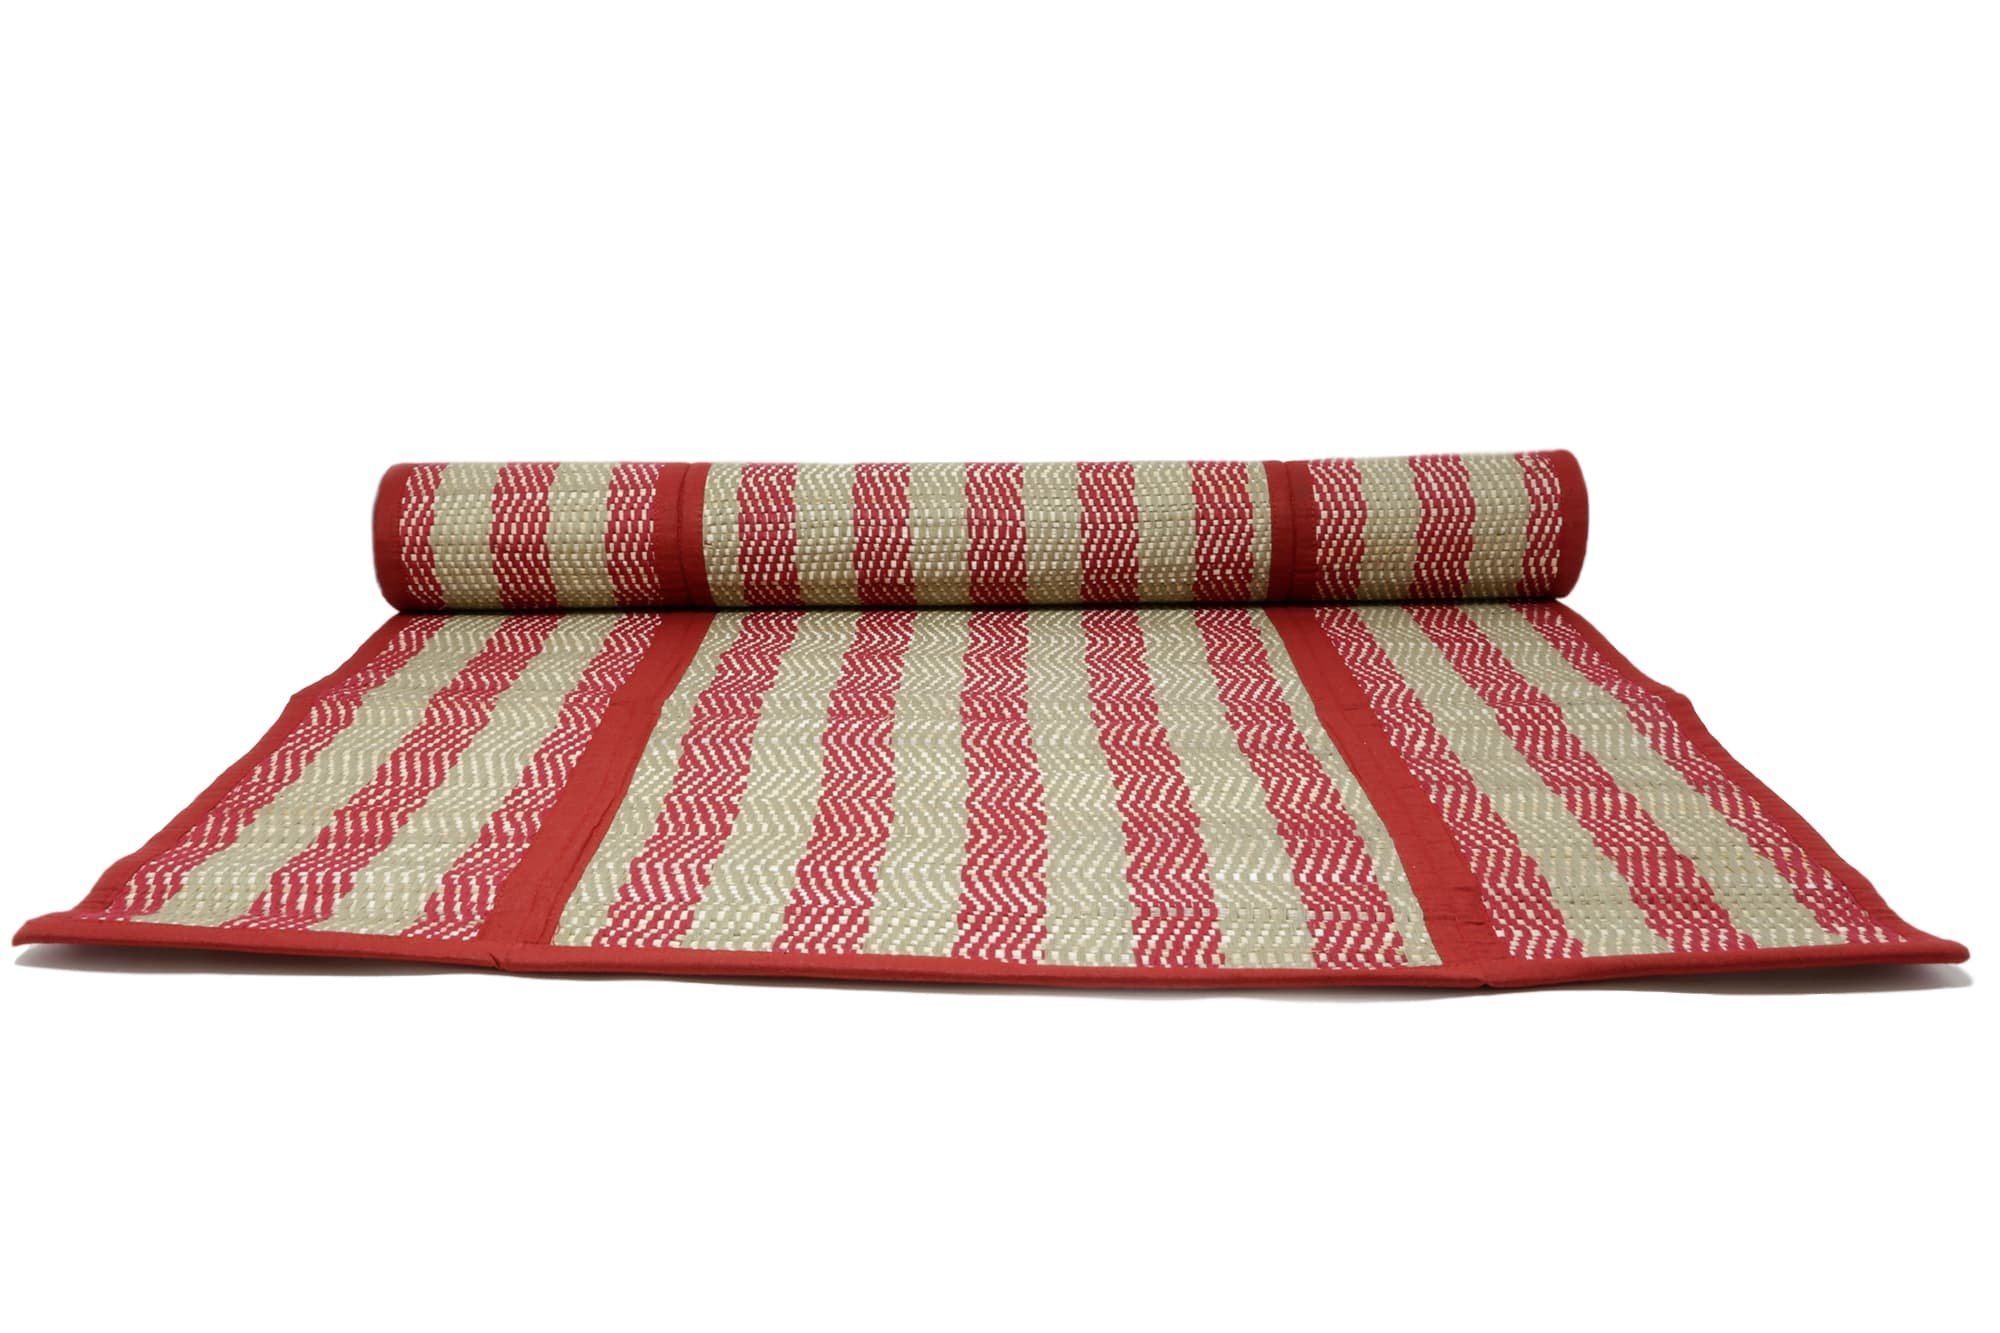 ShalinIndia Handloom Woven Eco Friendly Crimson Beige Banana Fiber Chevrom Multipurpose Travel Mat For Beach Meditation Yoga Exercise Picnic Home Outdoors 26 X72 Inch Folded -With A Cotton Bag